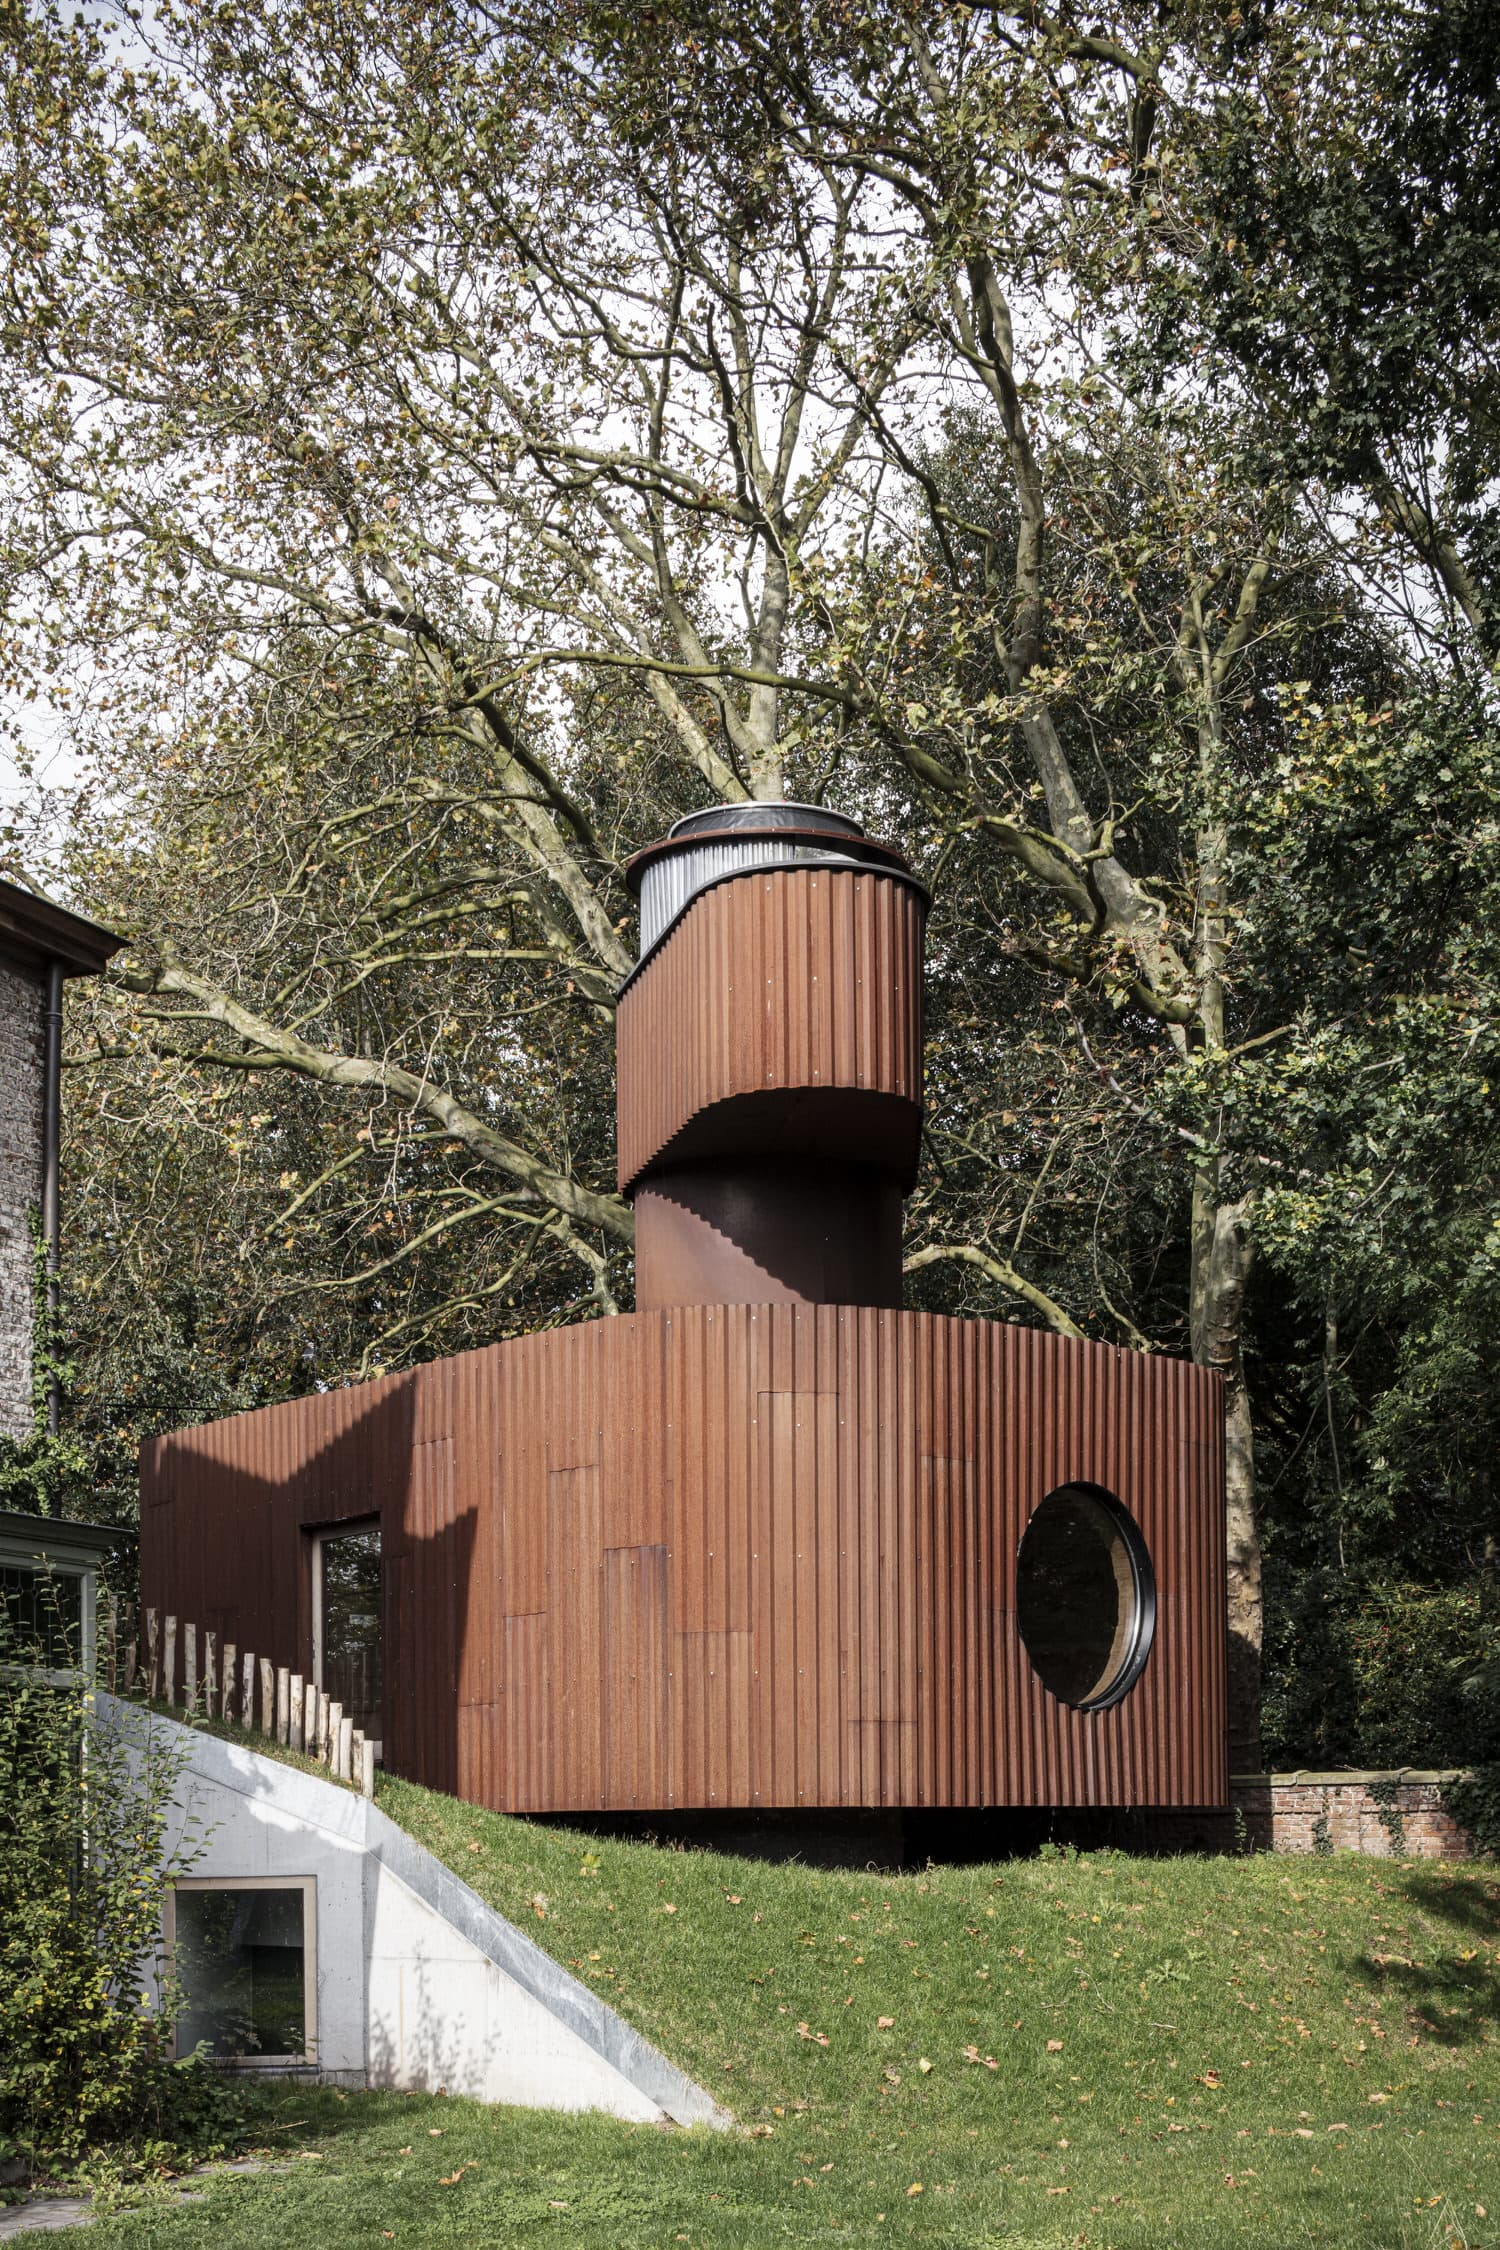 Alex Guesthouse & Cinema Space in Ghent by Atelier Vens Vanbelle.